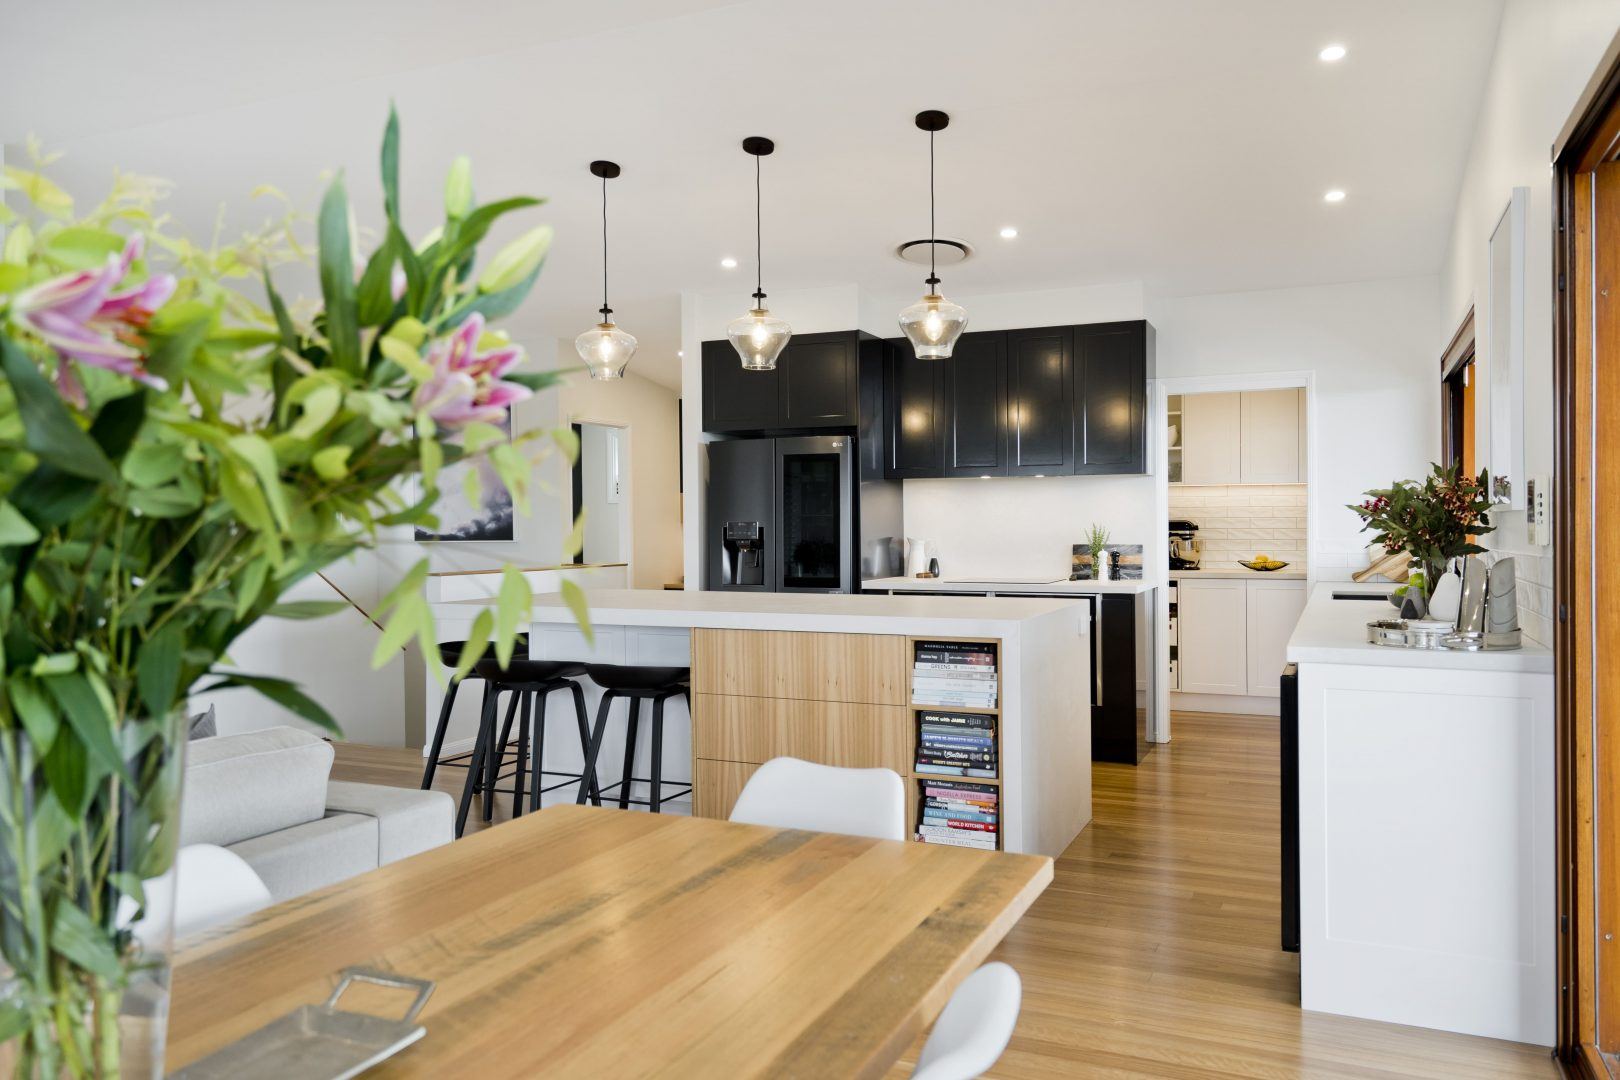 How to Renovate Your Home Successfully